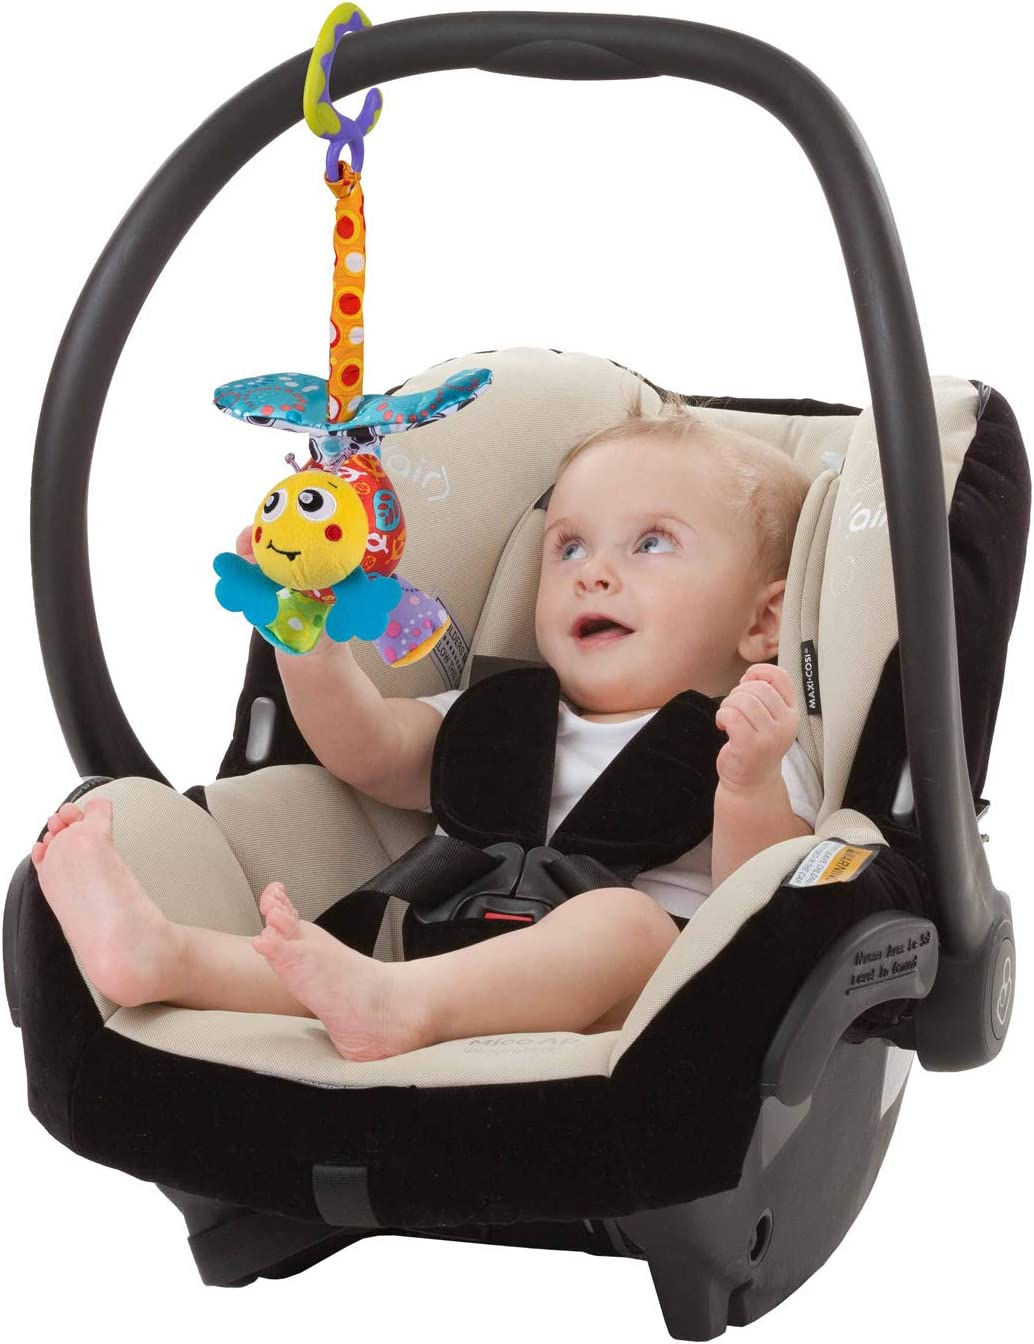 From 0 Months Multicoloured 40204 Playgro Pram Toy Grovy Mover Bee